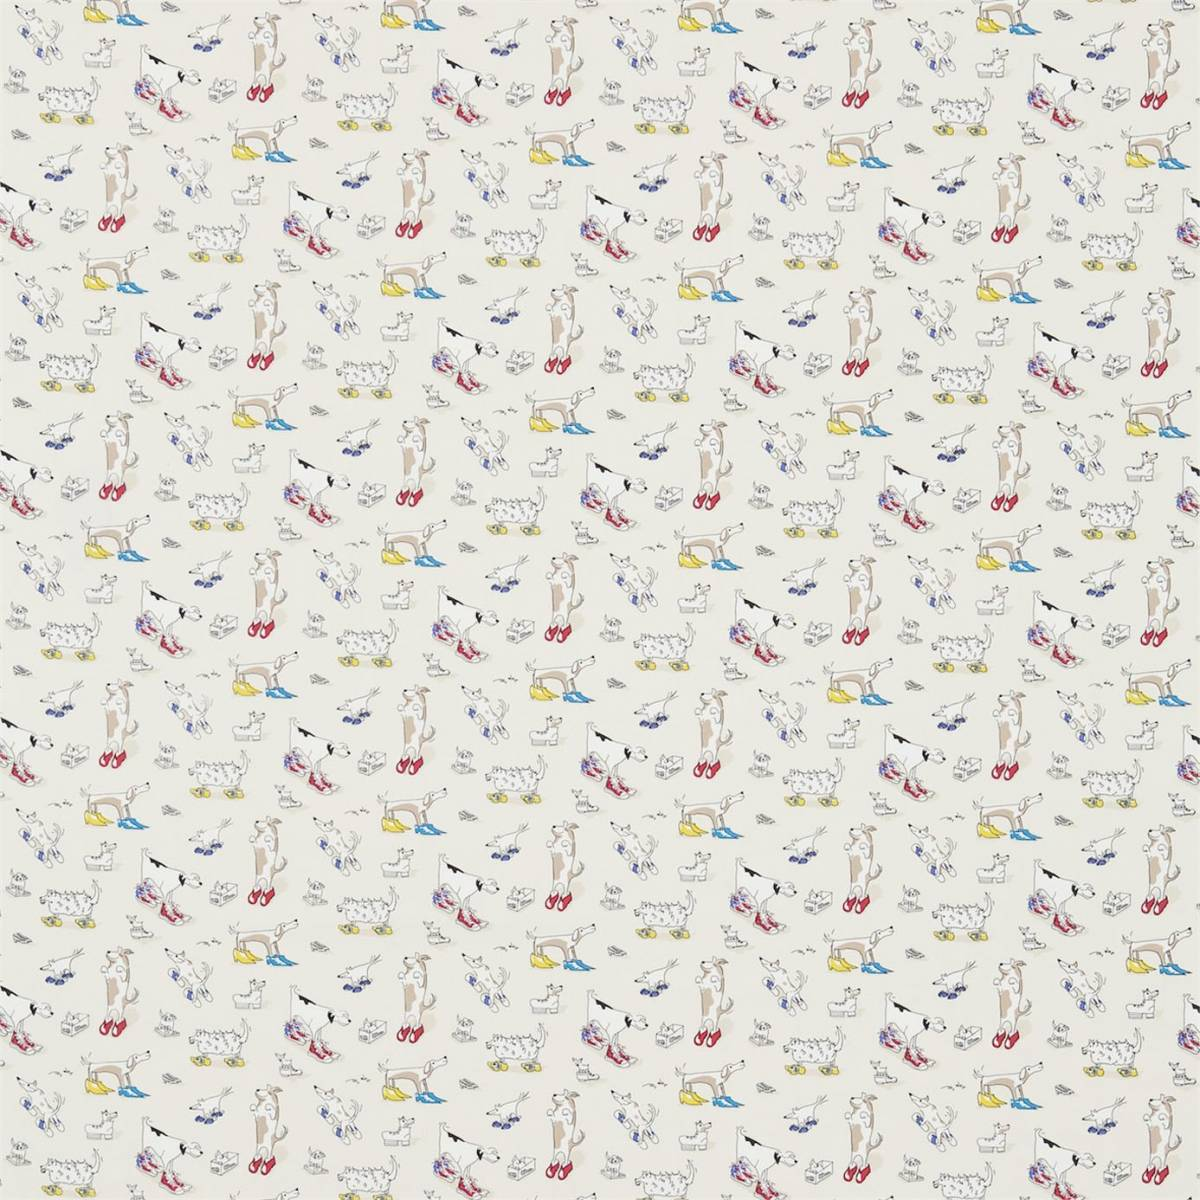 Scrapbook paper dogs - Sanderson Abracazoo Fabrics Wallpapers Dogs In Clogs Fabric Rainbow Brights 223907 Loading Zoom